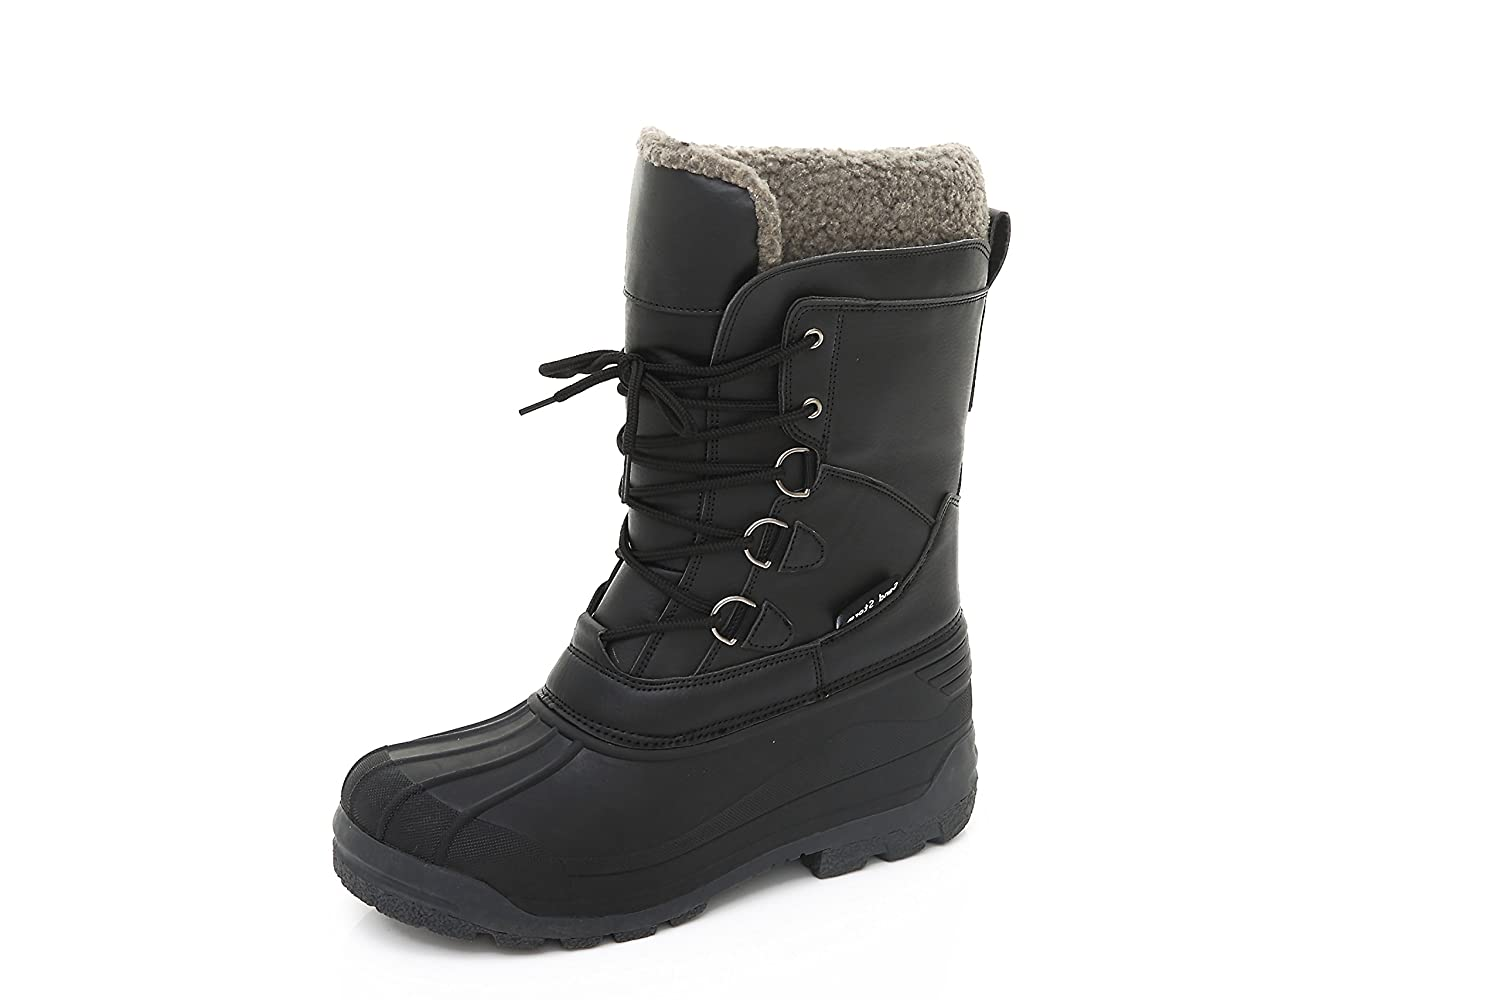 Sand Storm Womens Insulated Winter Snow Boots - Lace-up Closure Comfortable Weatherproof Warm Ladies